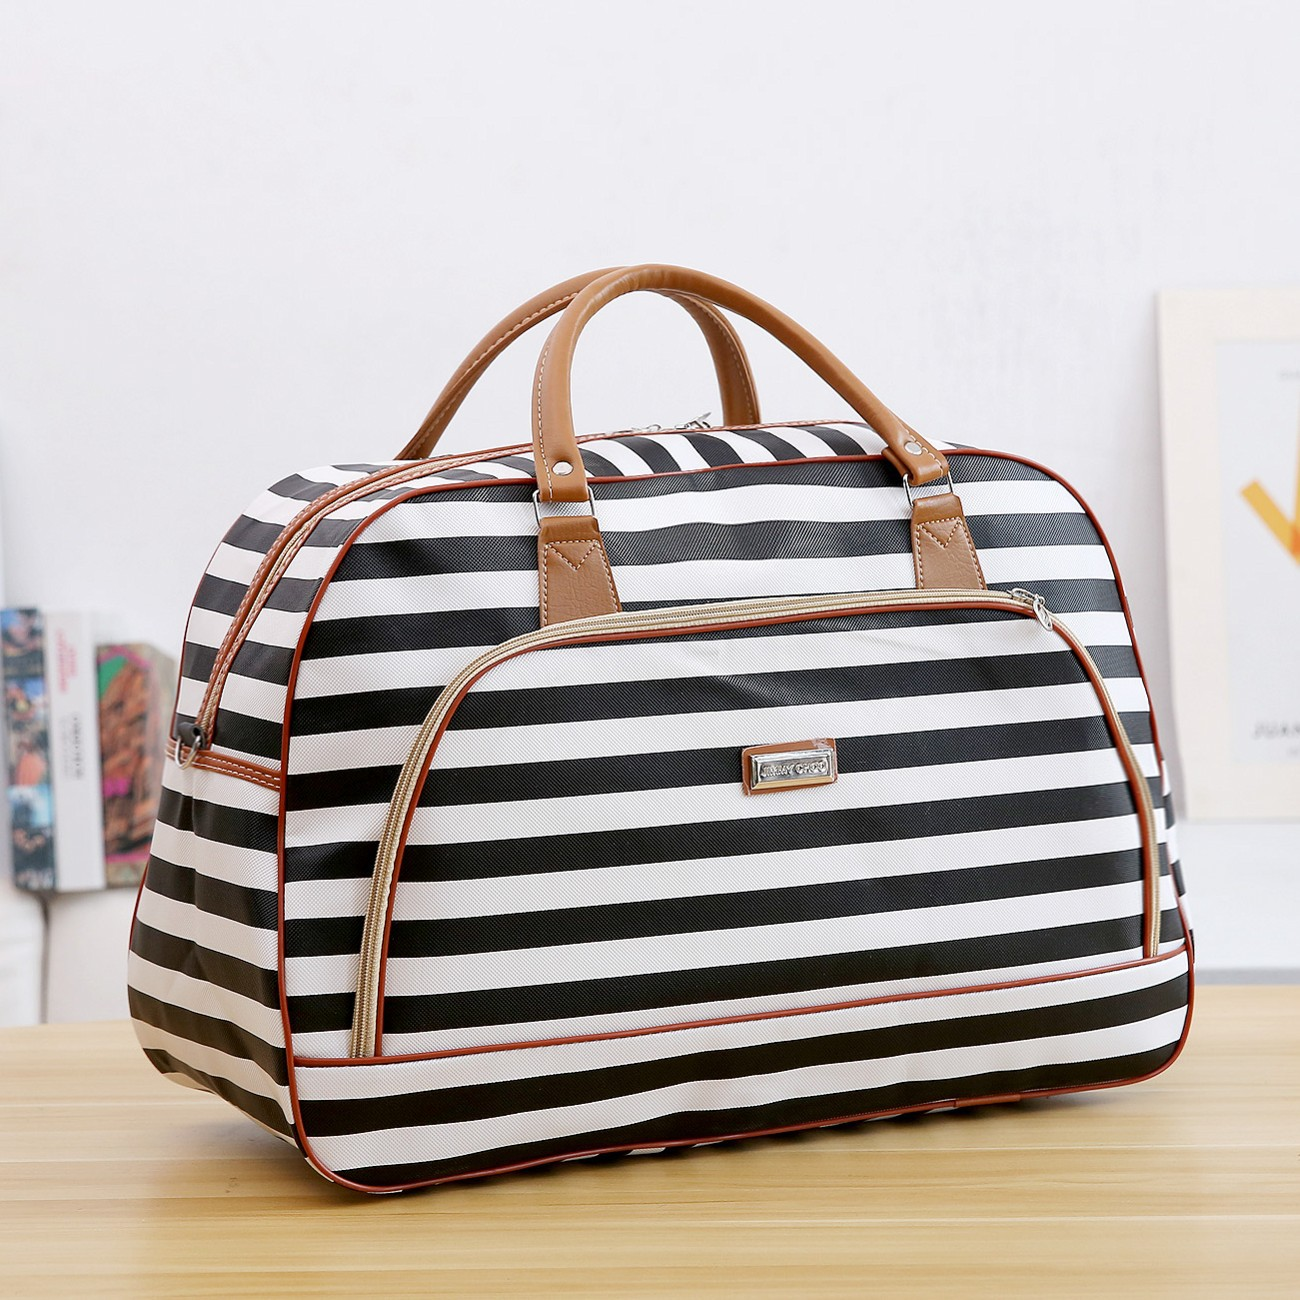 Women Leather Travel Handbags Traveling Luggage Black And White Stripe Duffle Bag Girls Duffle Travel Bag